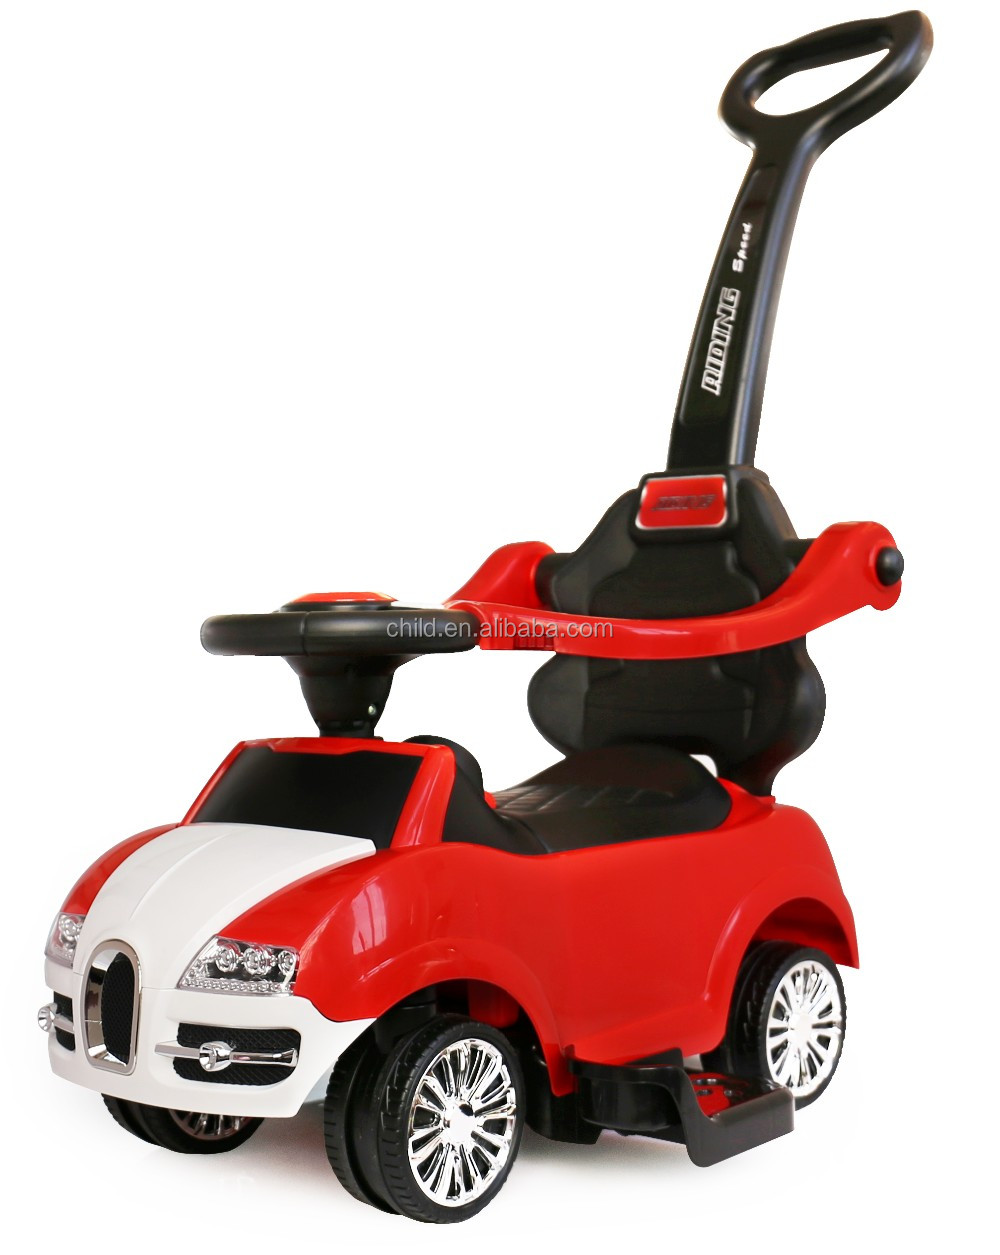 Ride On Toy Car : Ride on toy cars kid s push car buy